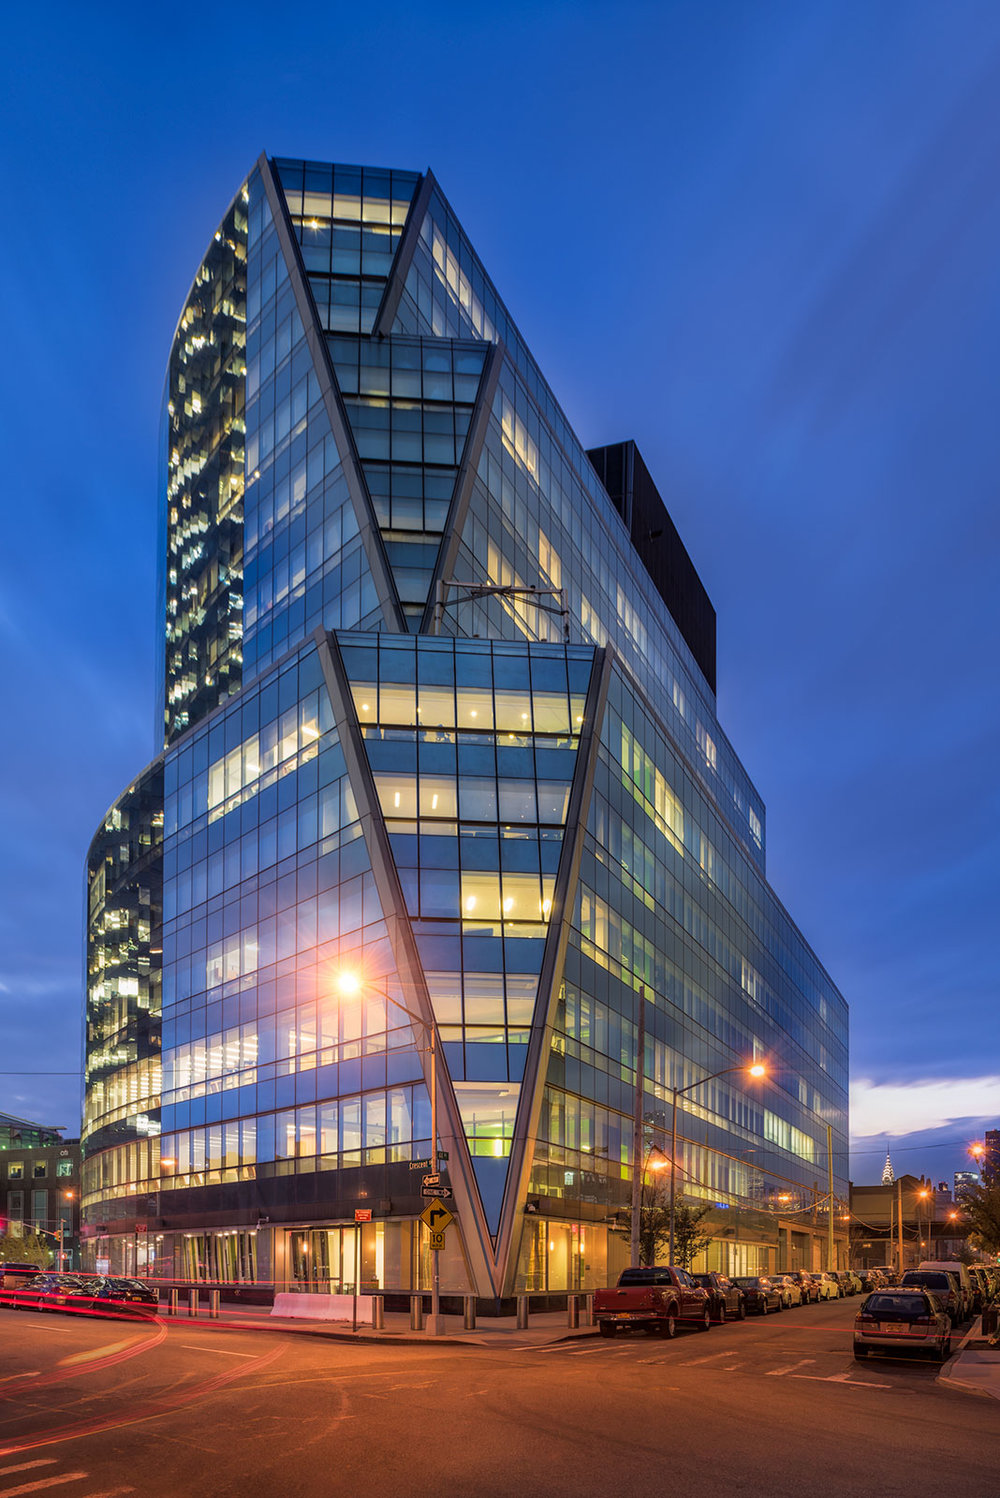 CUNY School of Law, Long Island City